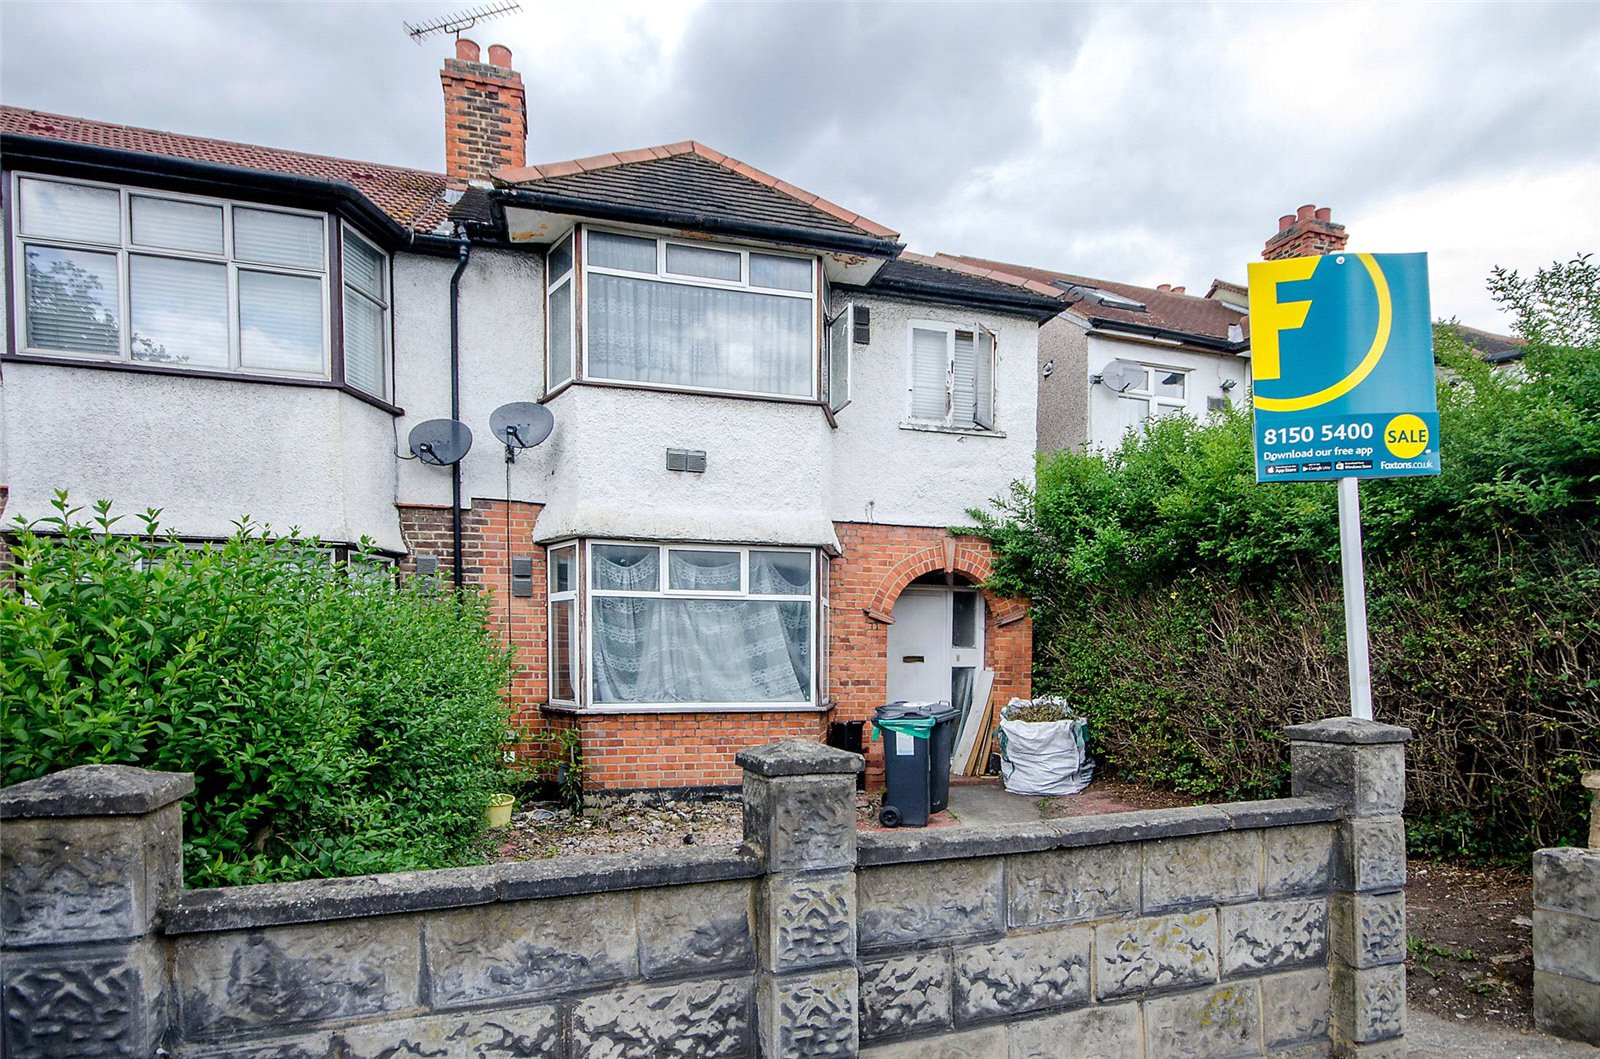 3 bed house for sale in Streatham  - Property Image 2